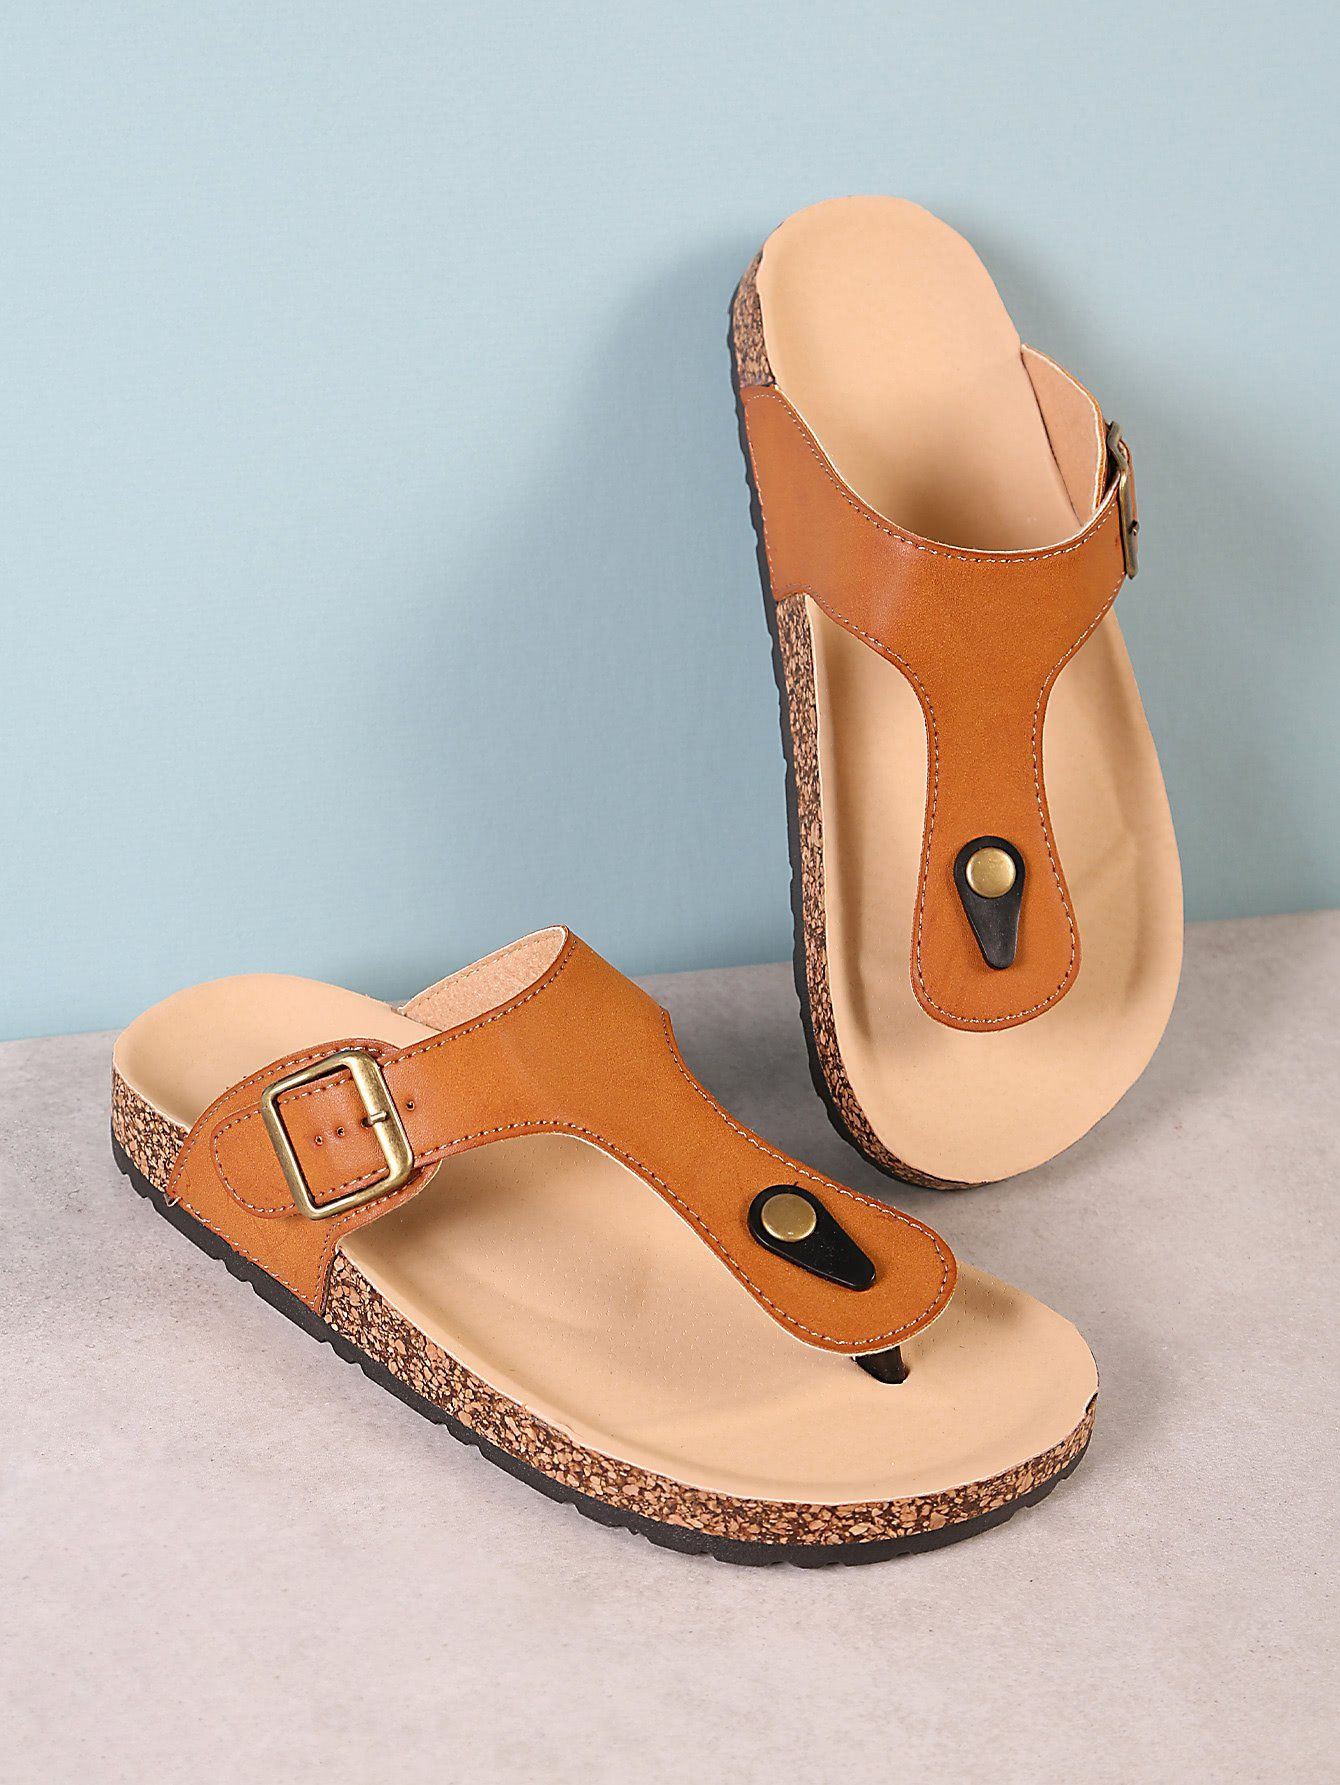 bbbd2fab0ae Cork Footbed Slide Sandal with Buckled T-Strap Thong TAN in 2018 ...